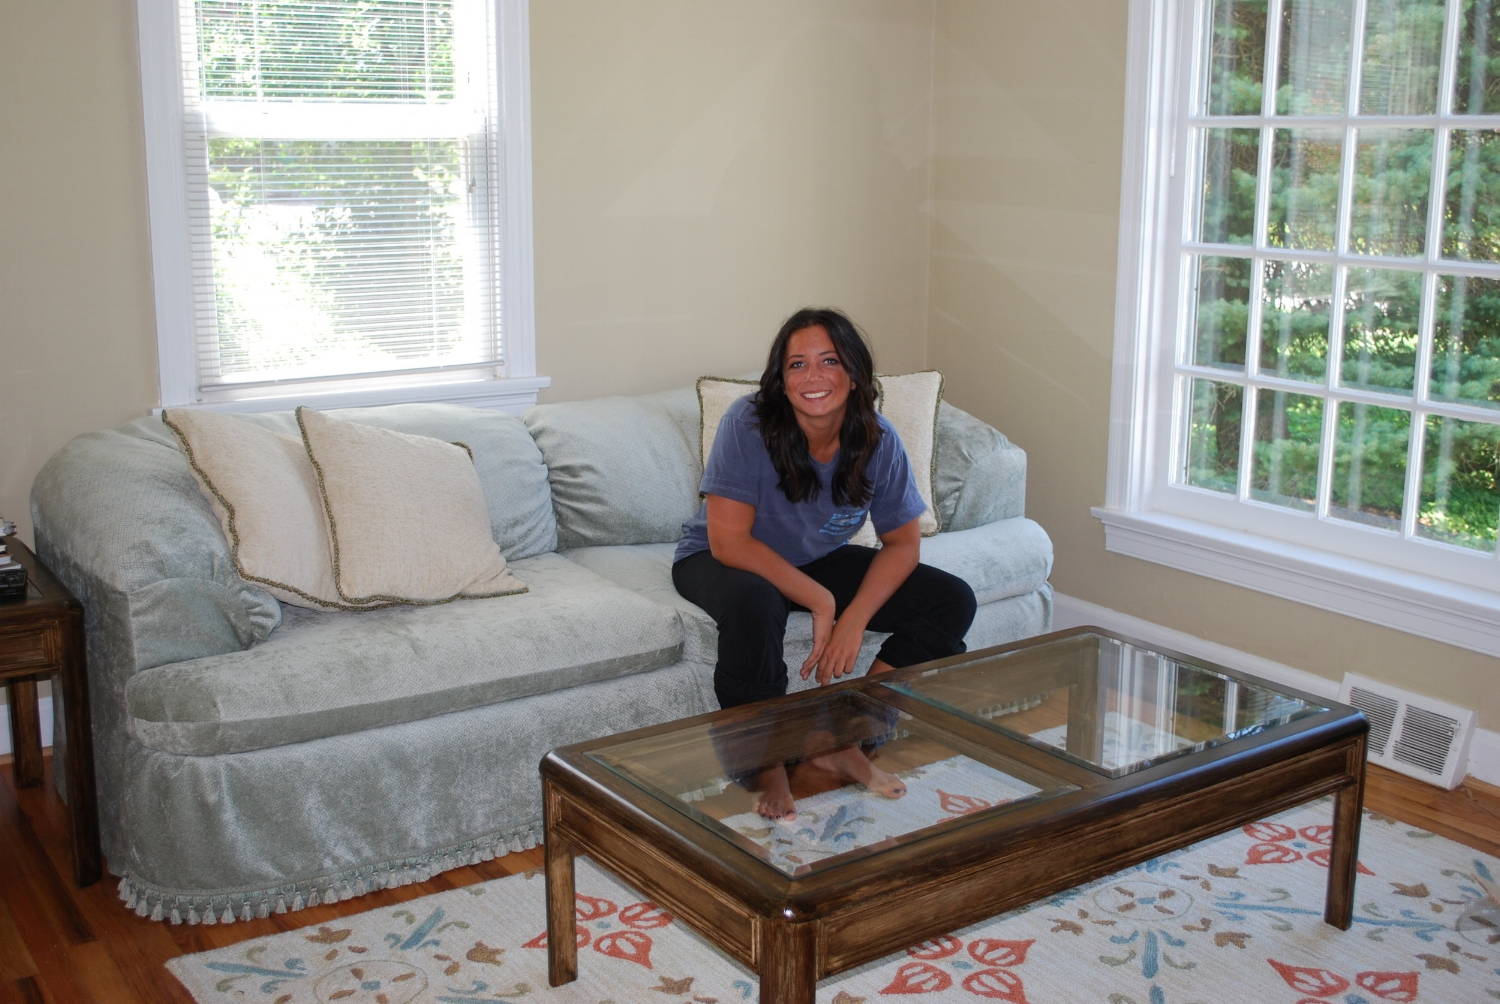 They lived on Granite Ave in an adorable little house that could have been featured on HGTV. They refinished the furniture together...while I reupholstered their couches.